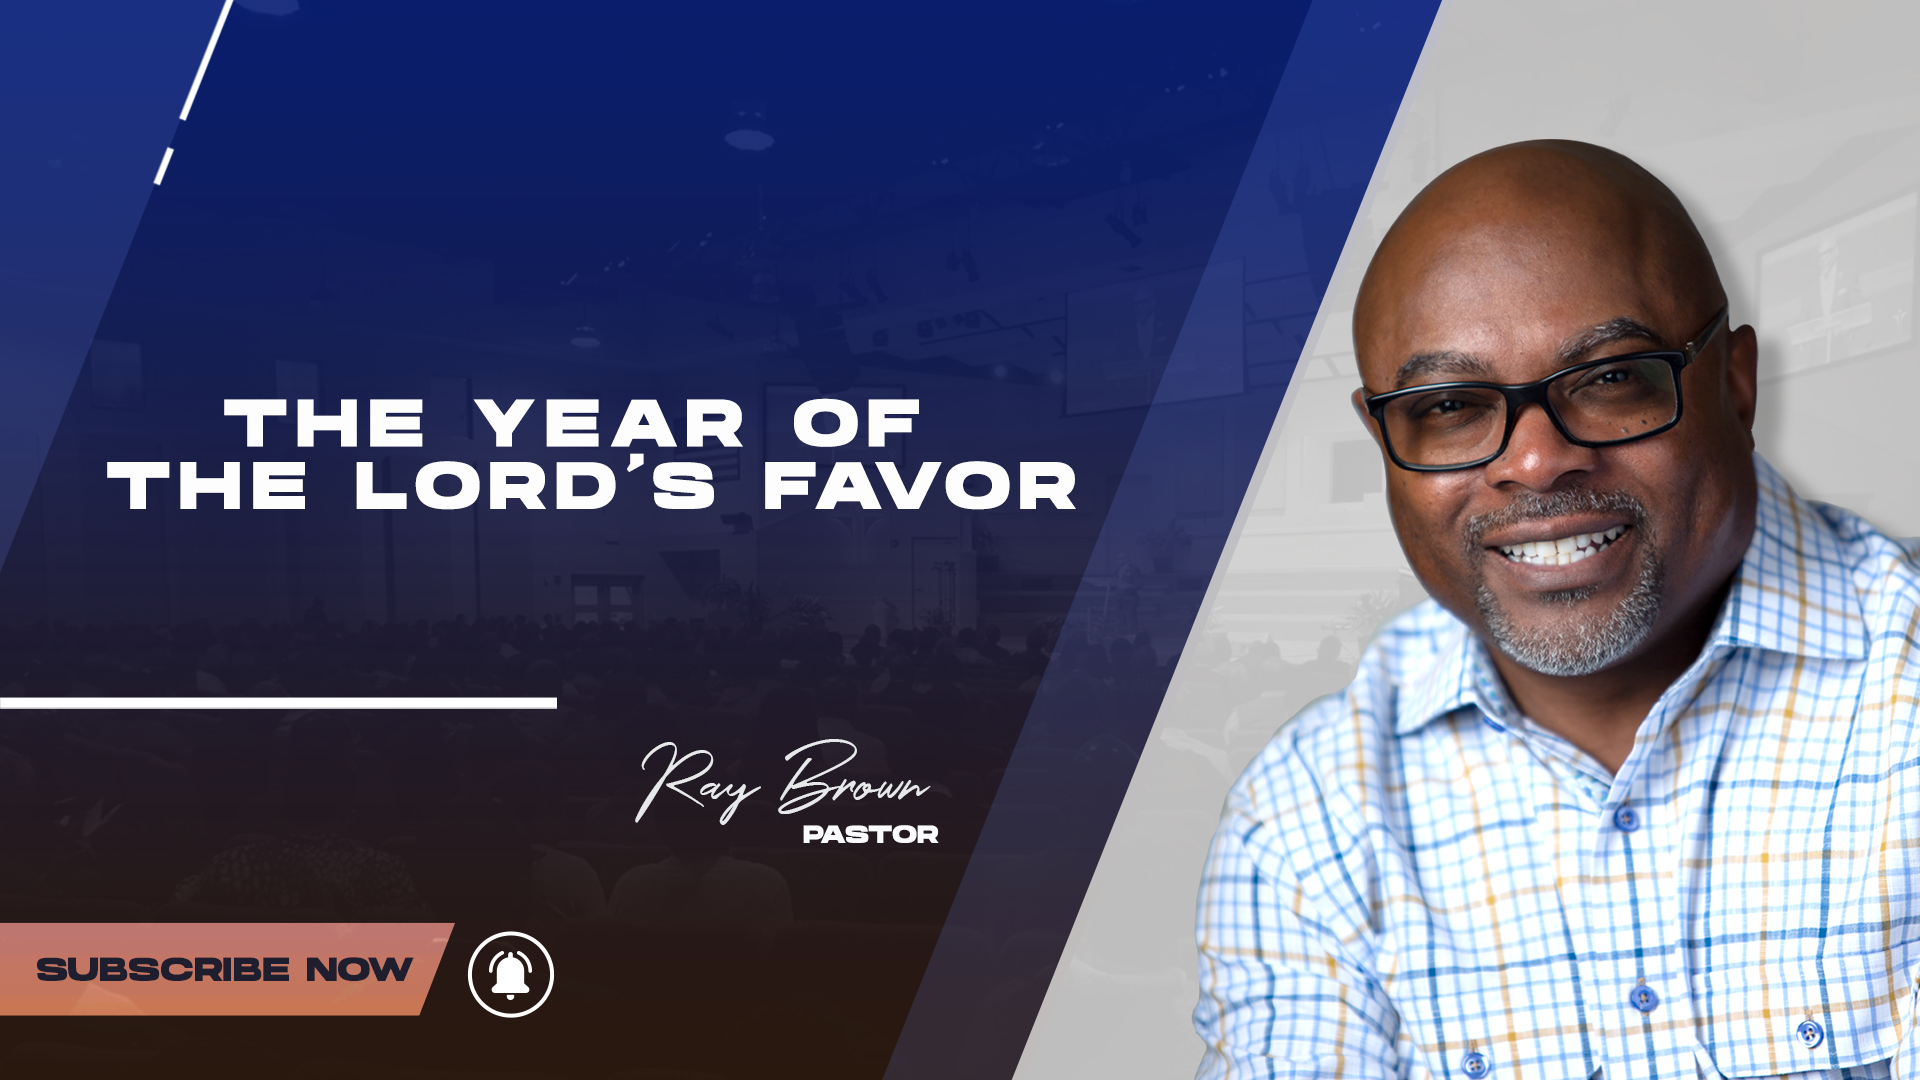 010321 THE YEAR OF THE LORD'S FAVOR_